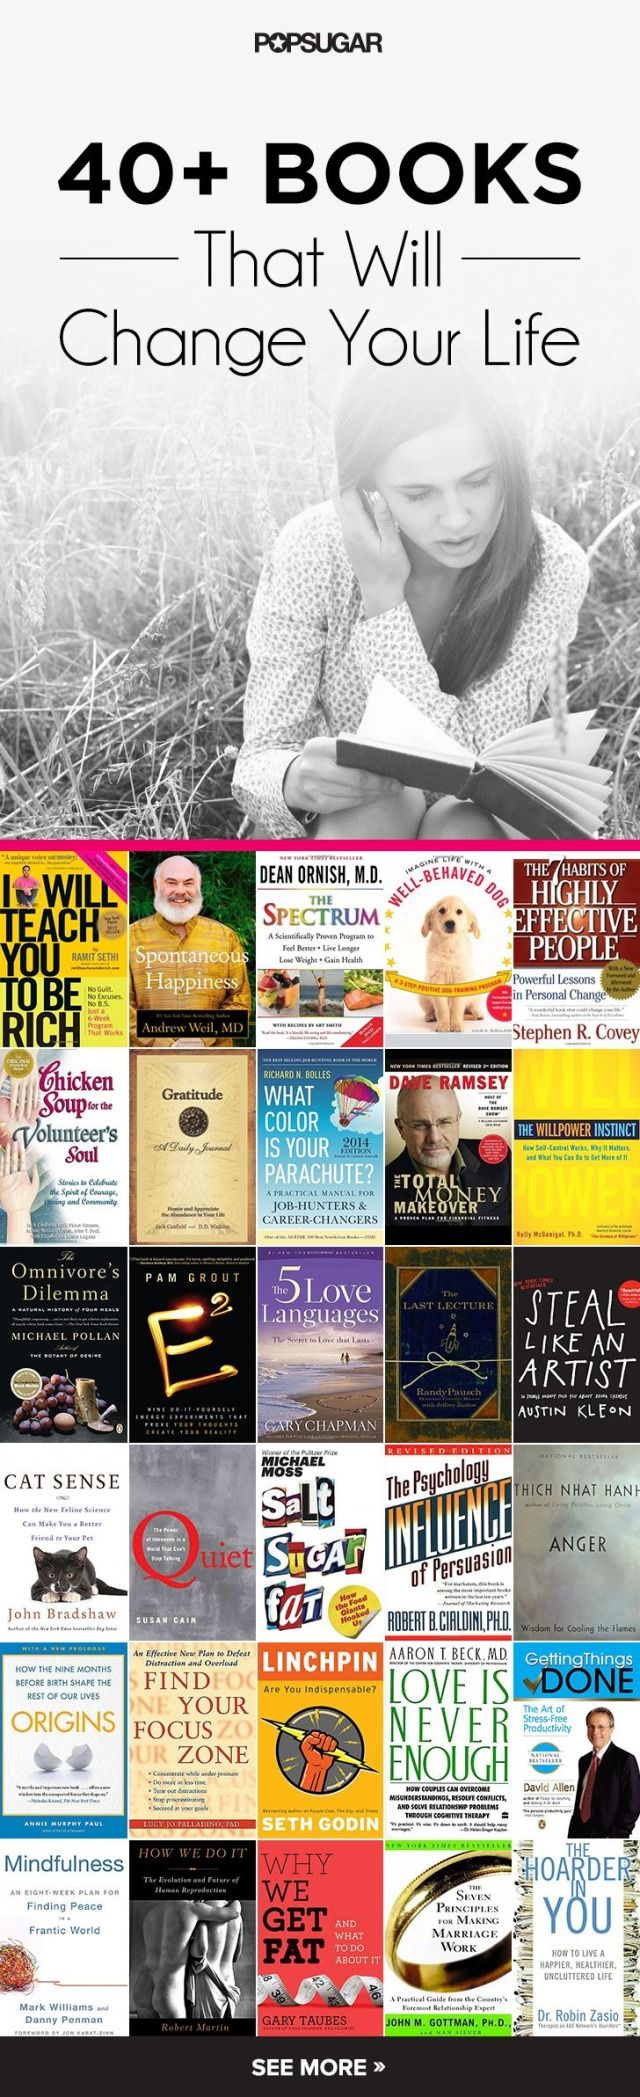 Whether it's figuring out how to get out of debt, learning how to be happier, or trying to find ways to get a job, reading just one of these books this year is guaranteed to change your life for good.